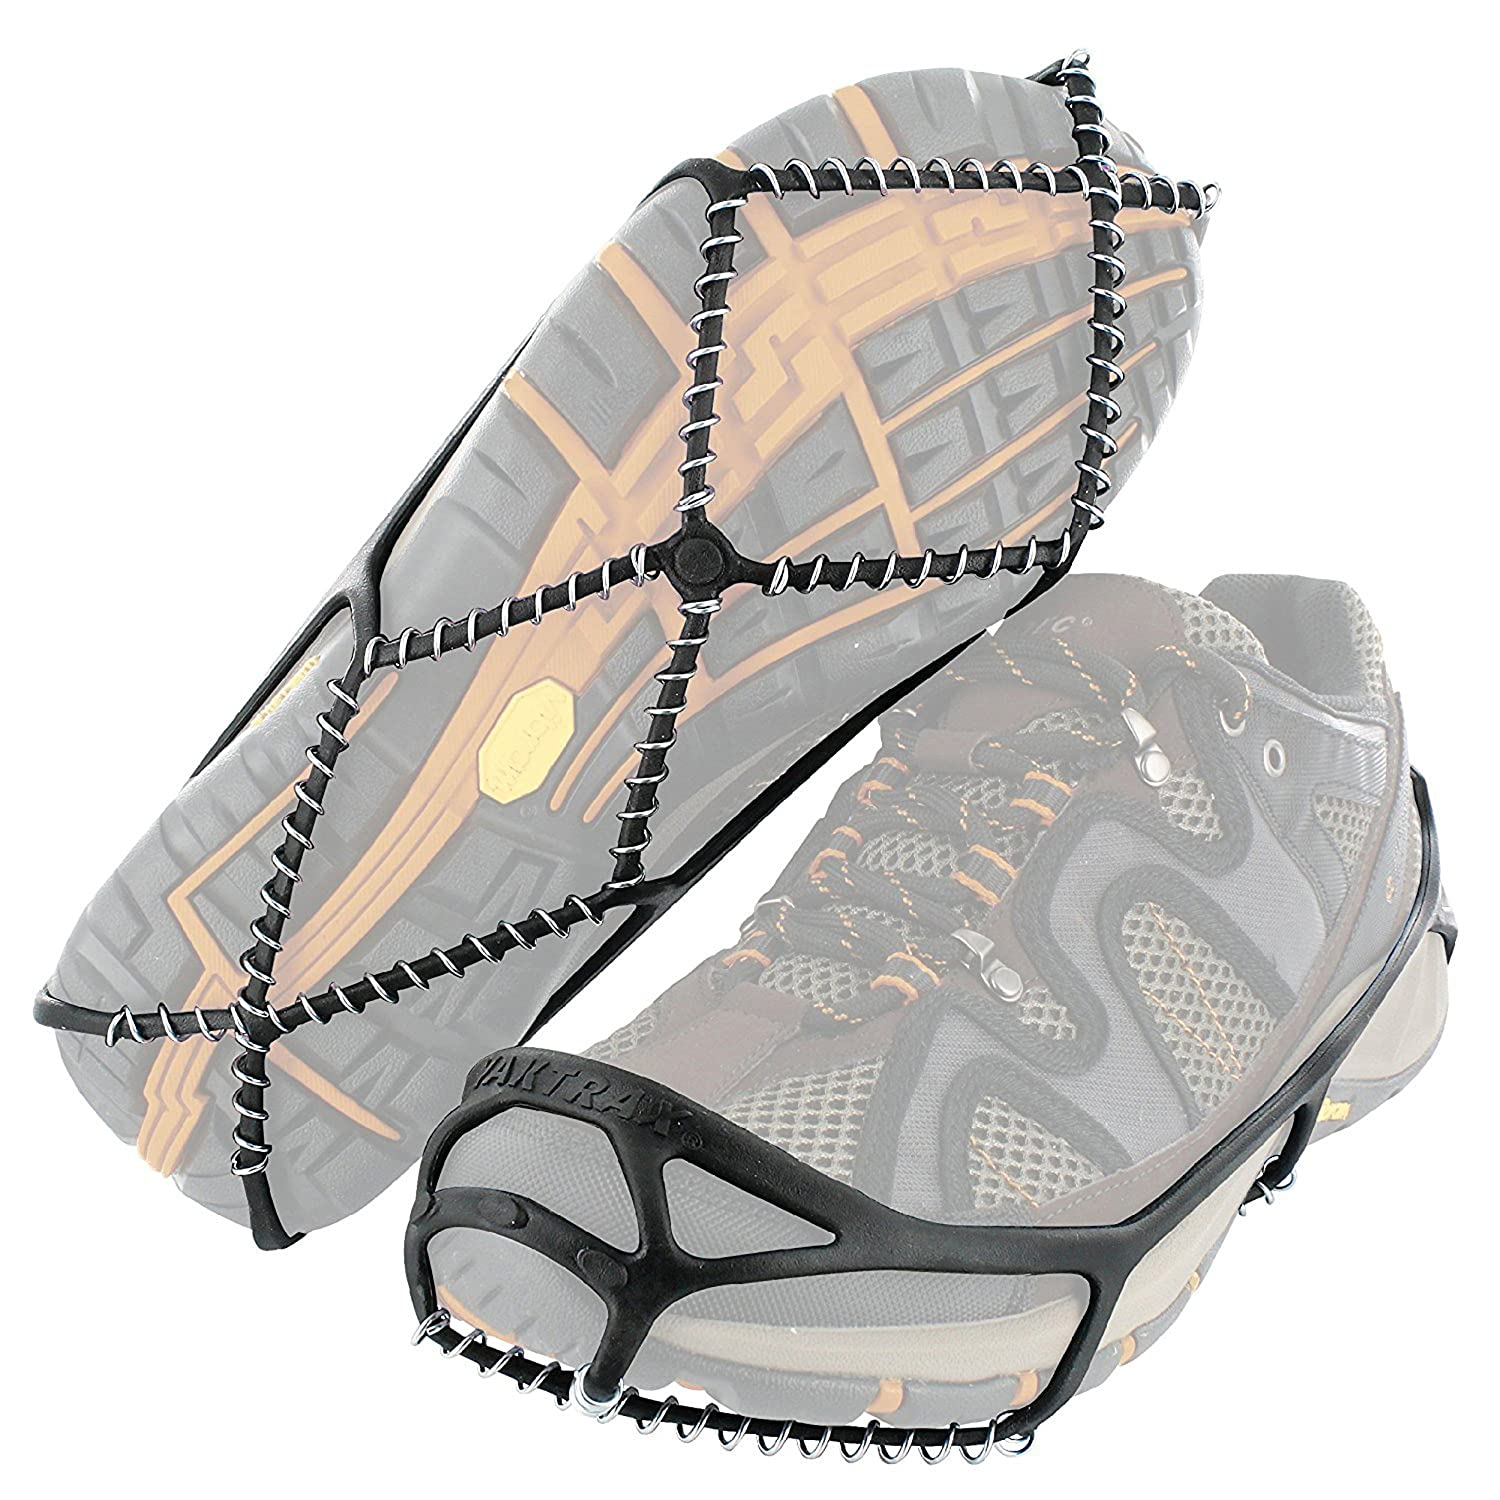 Yaktrax Walk Traction Cleats for Walking on Snow and Ice, Medium 8608 90040BLKMD